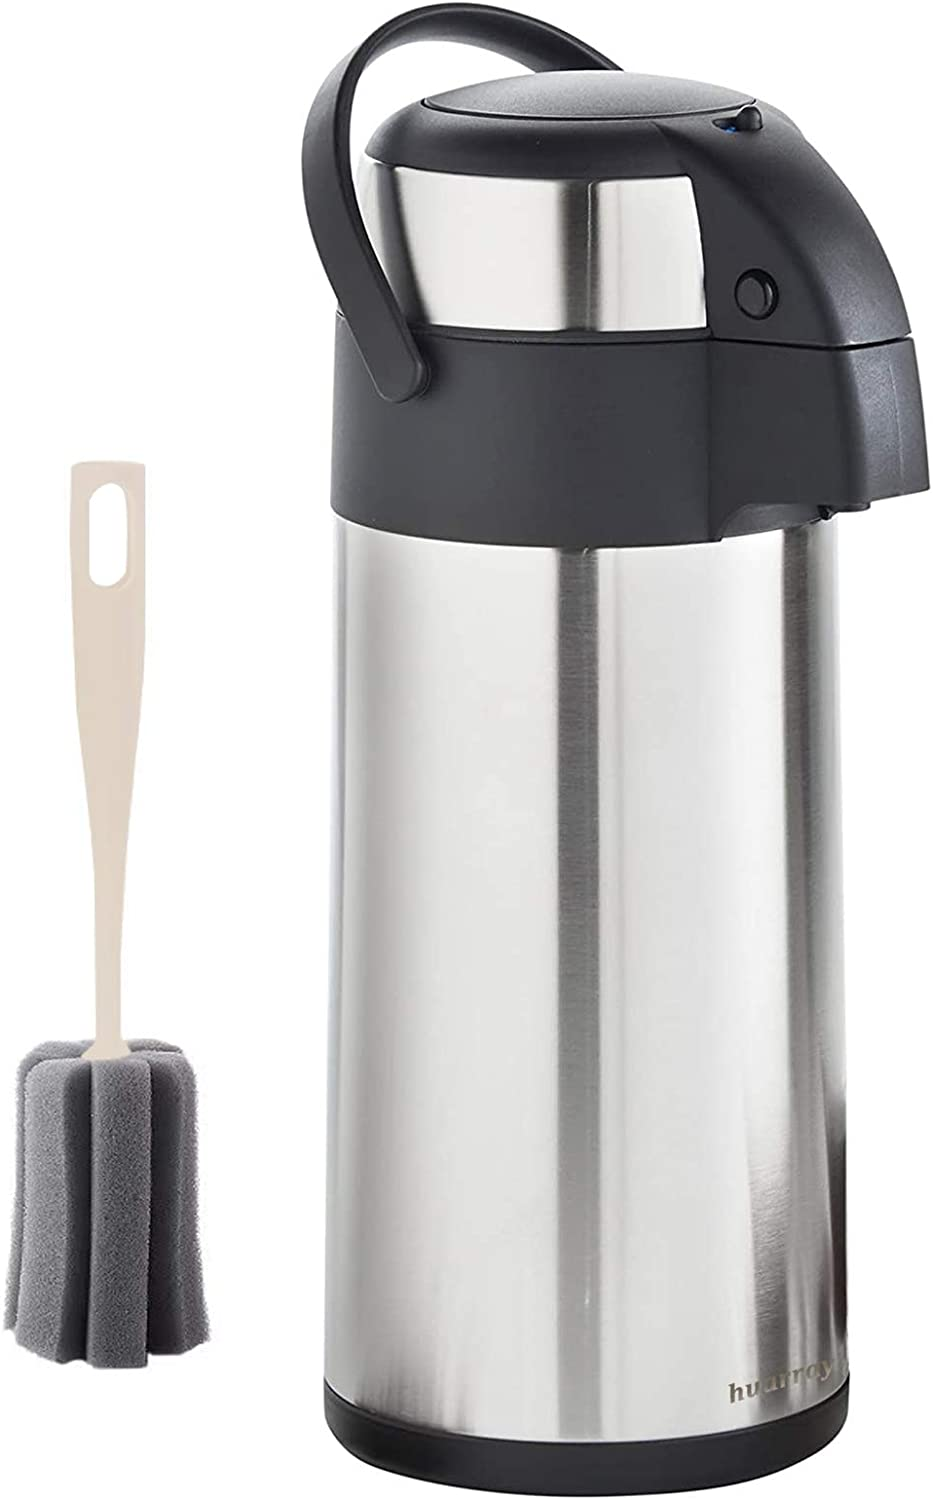 Stainless steel double-layer insulated water bottle with pump, coffee maker, water and beverage dispenser, 3 liters (100 ounces) vacuum insulation, 24-hour insulation/cold insulation, hot drink machine-cold/hot water party chocolate drink